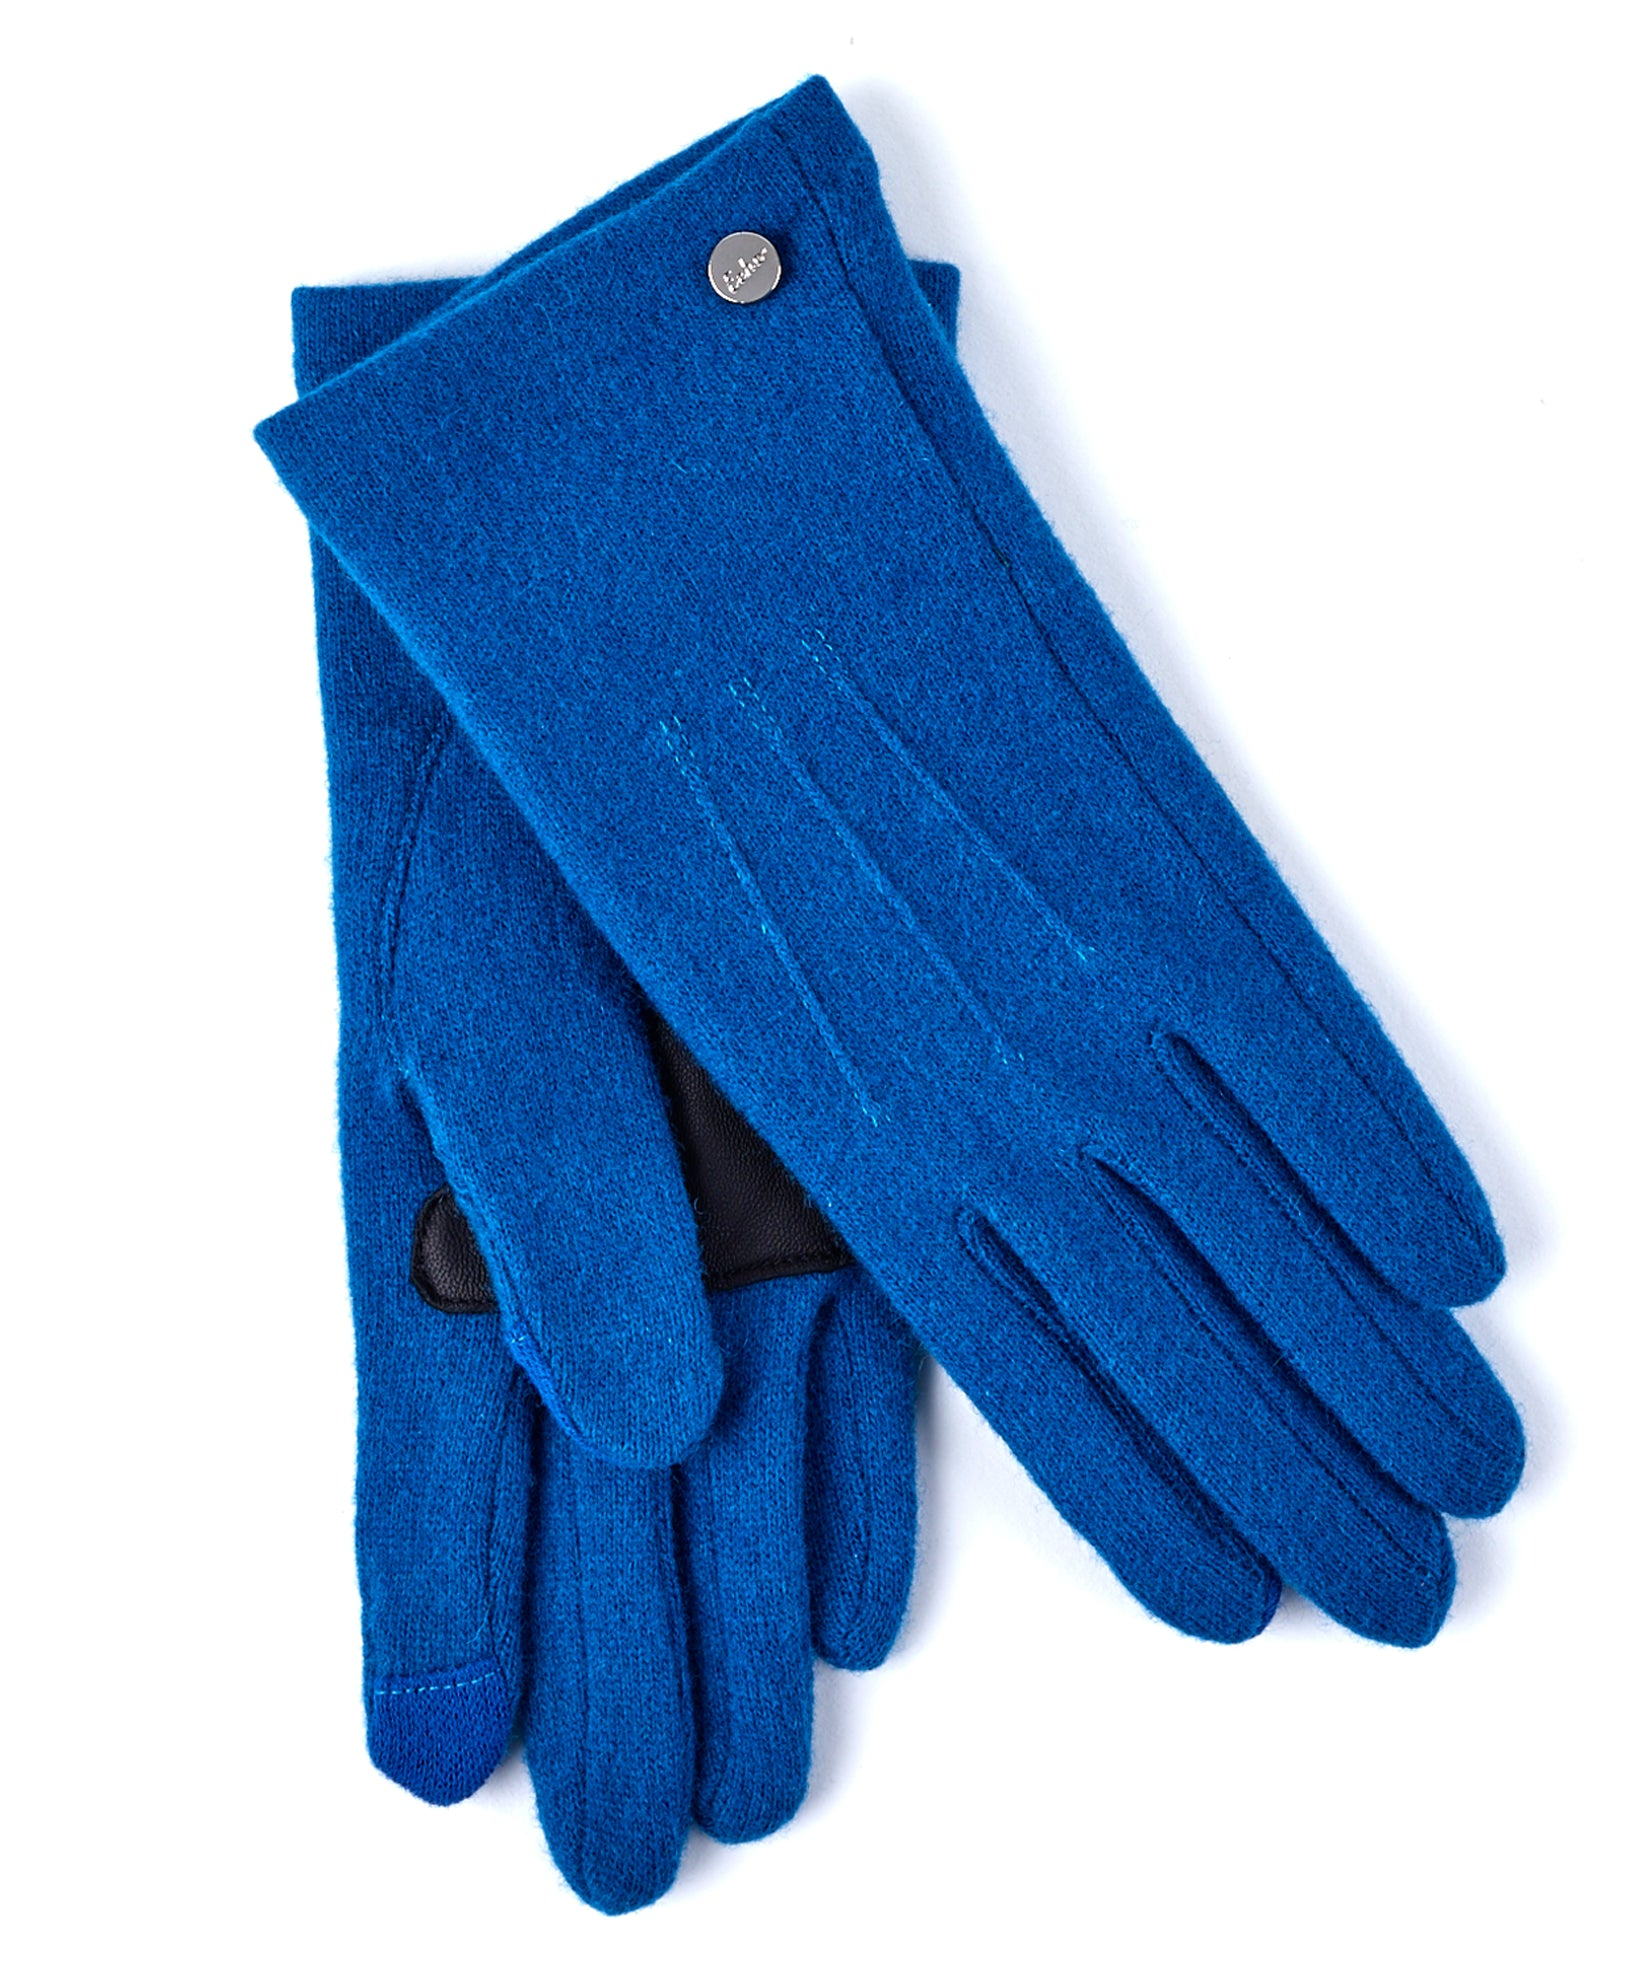 Peacock - Classic Glove